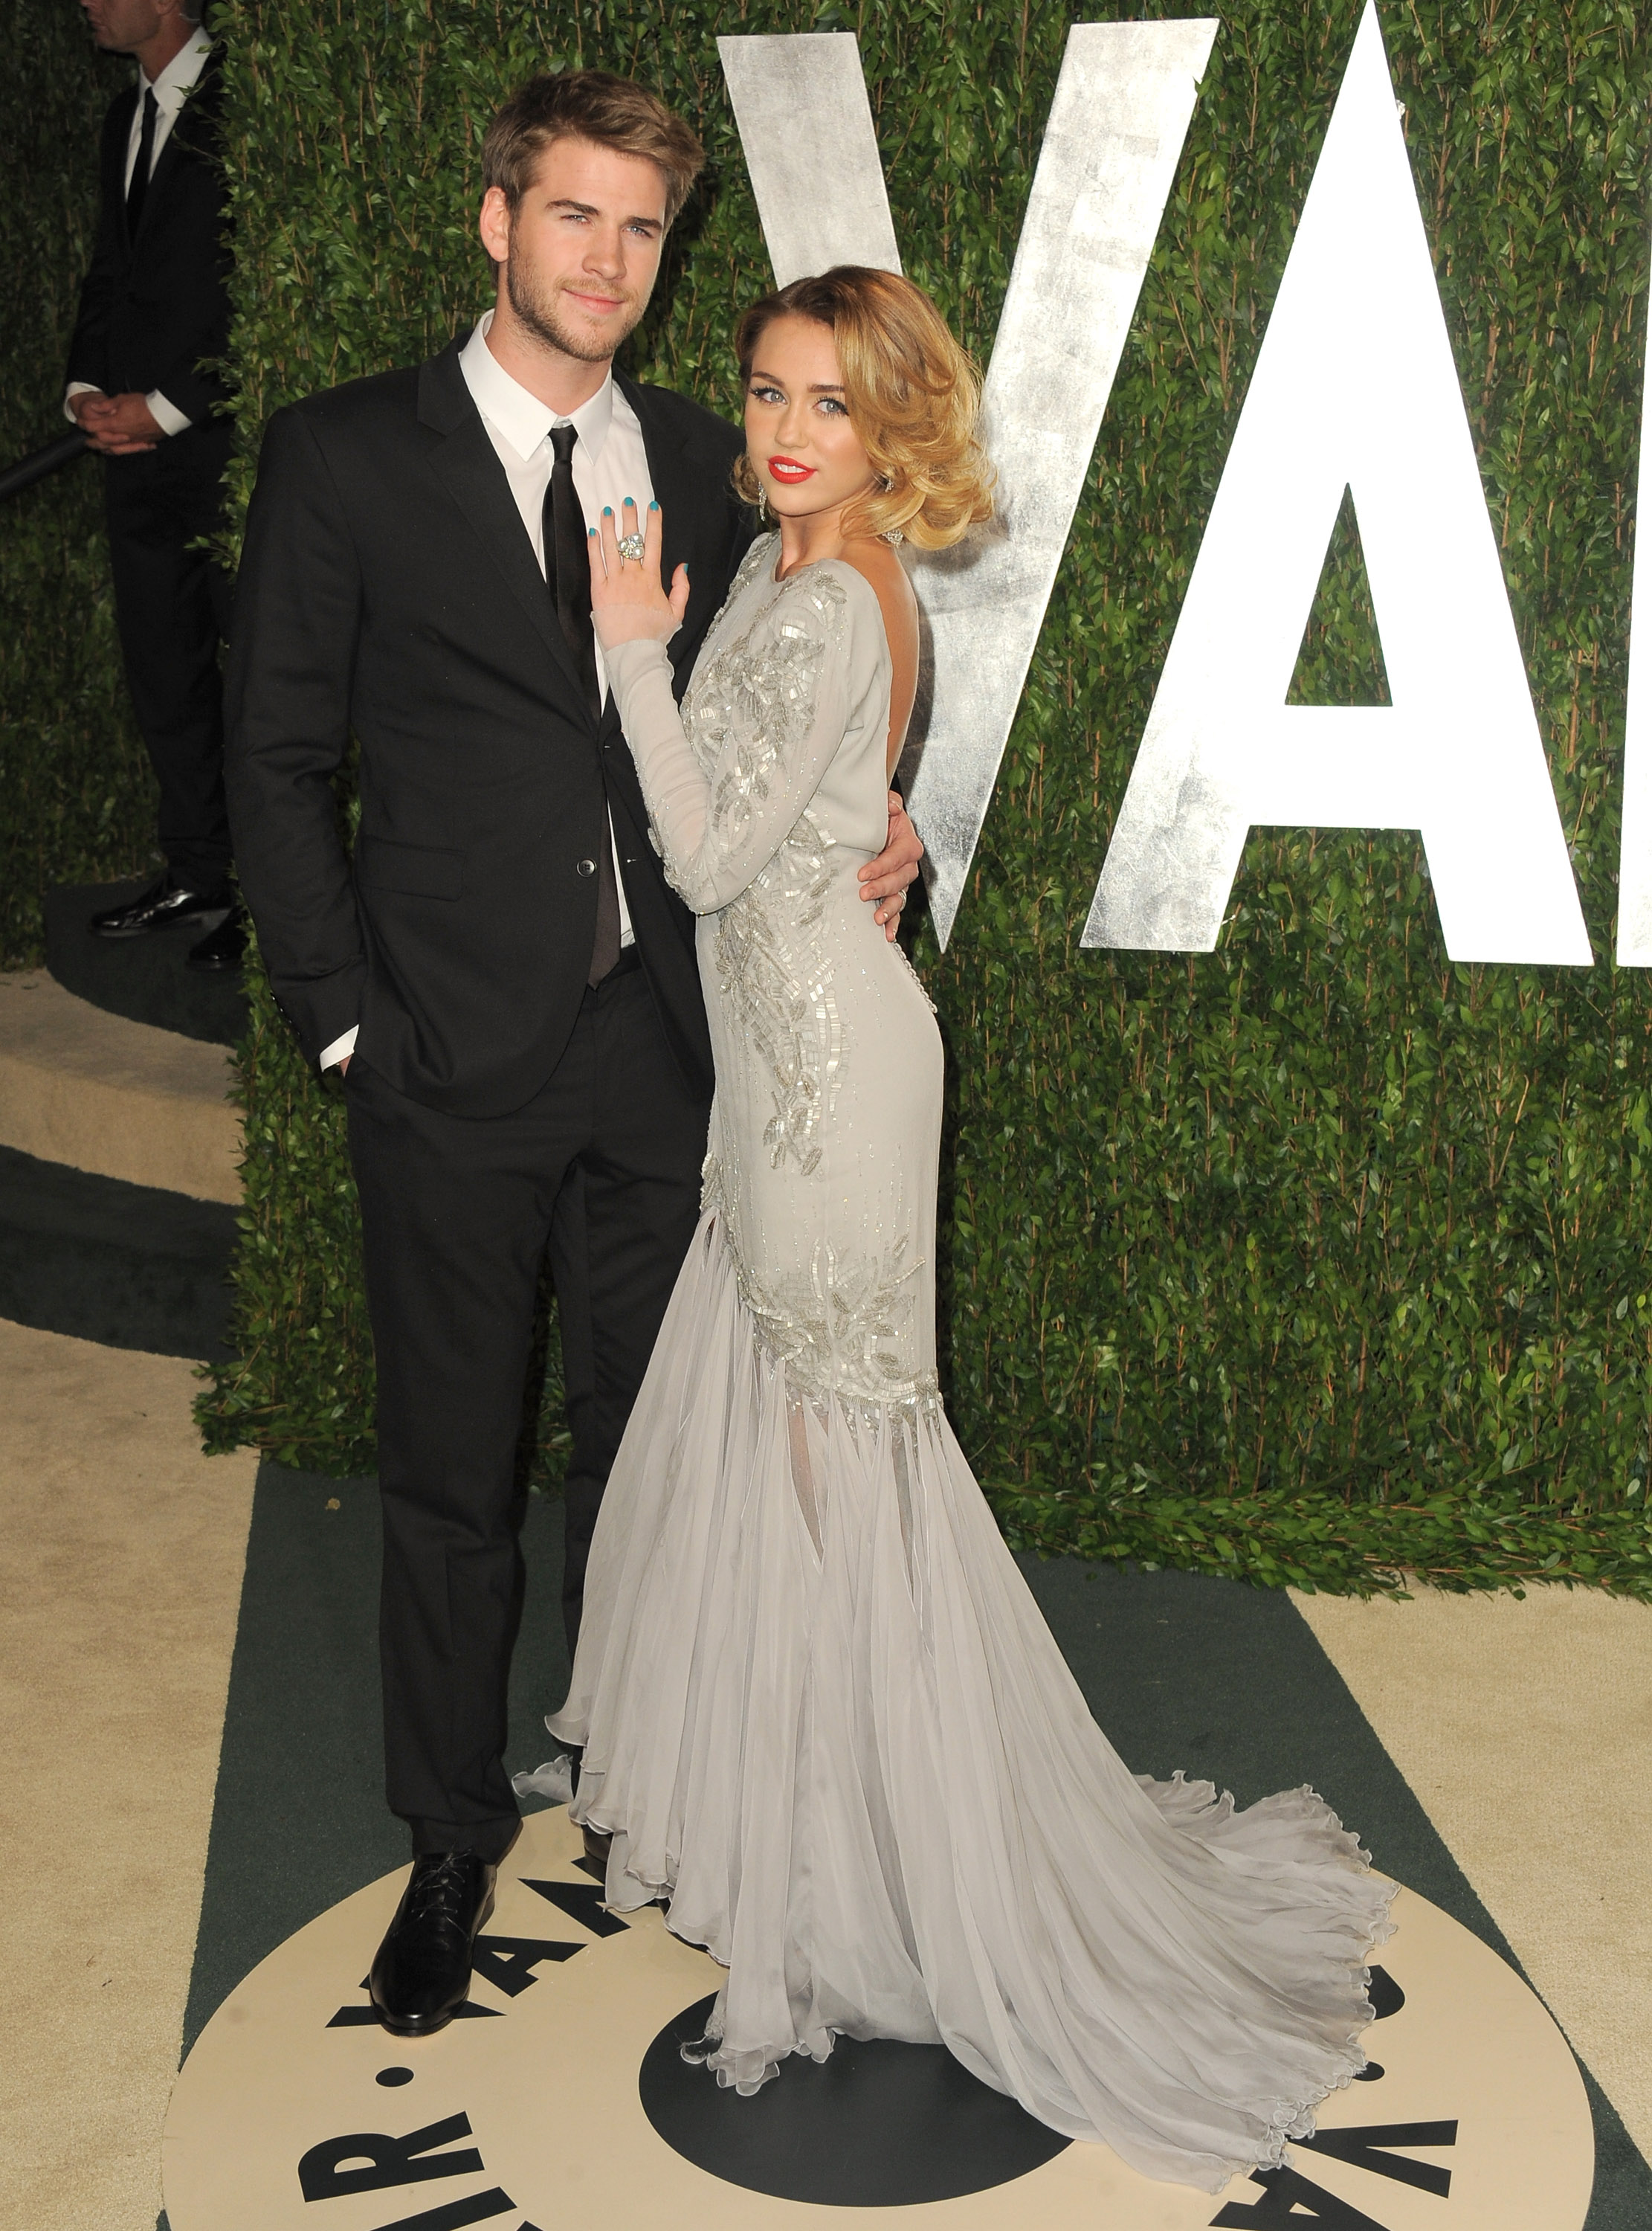 Miley holds on to her man Liam at the Vanity Fair party.